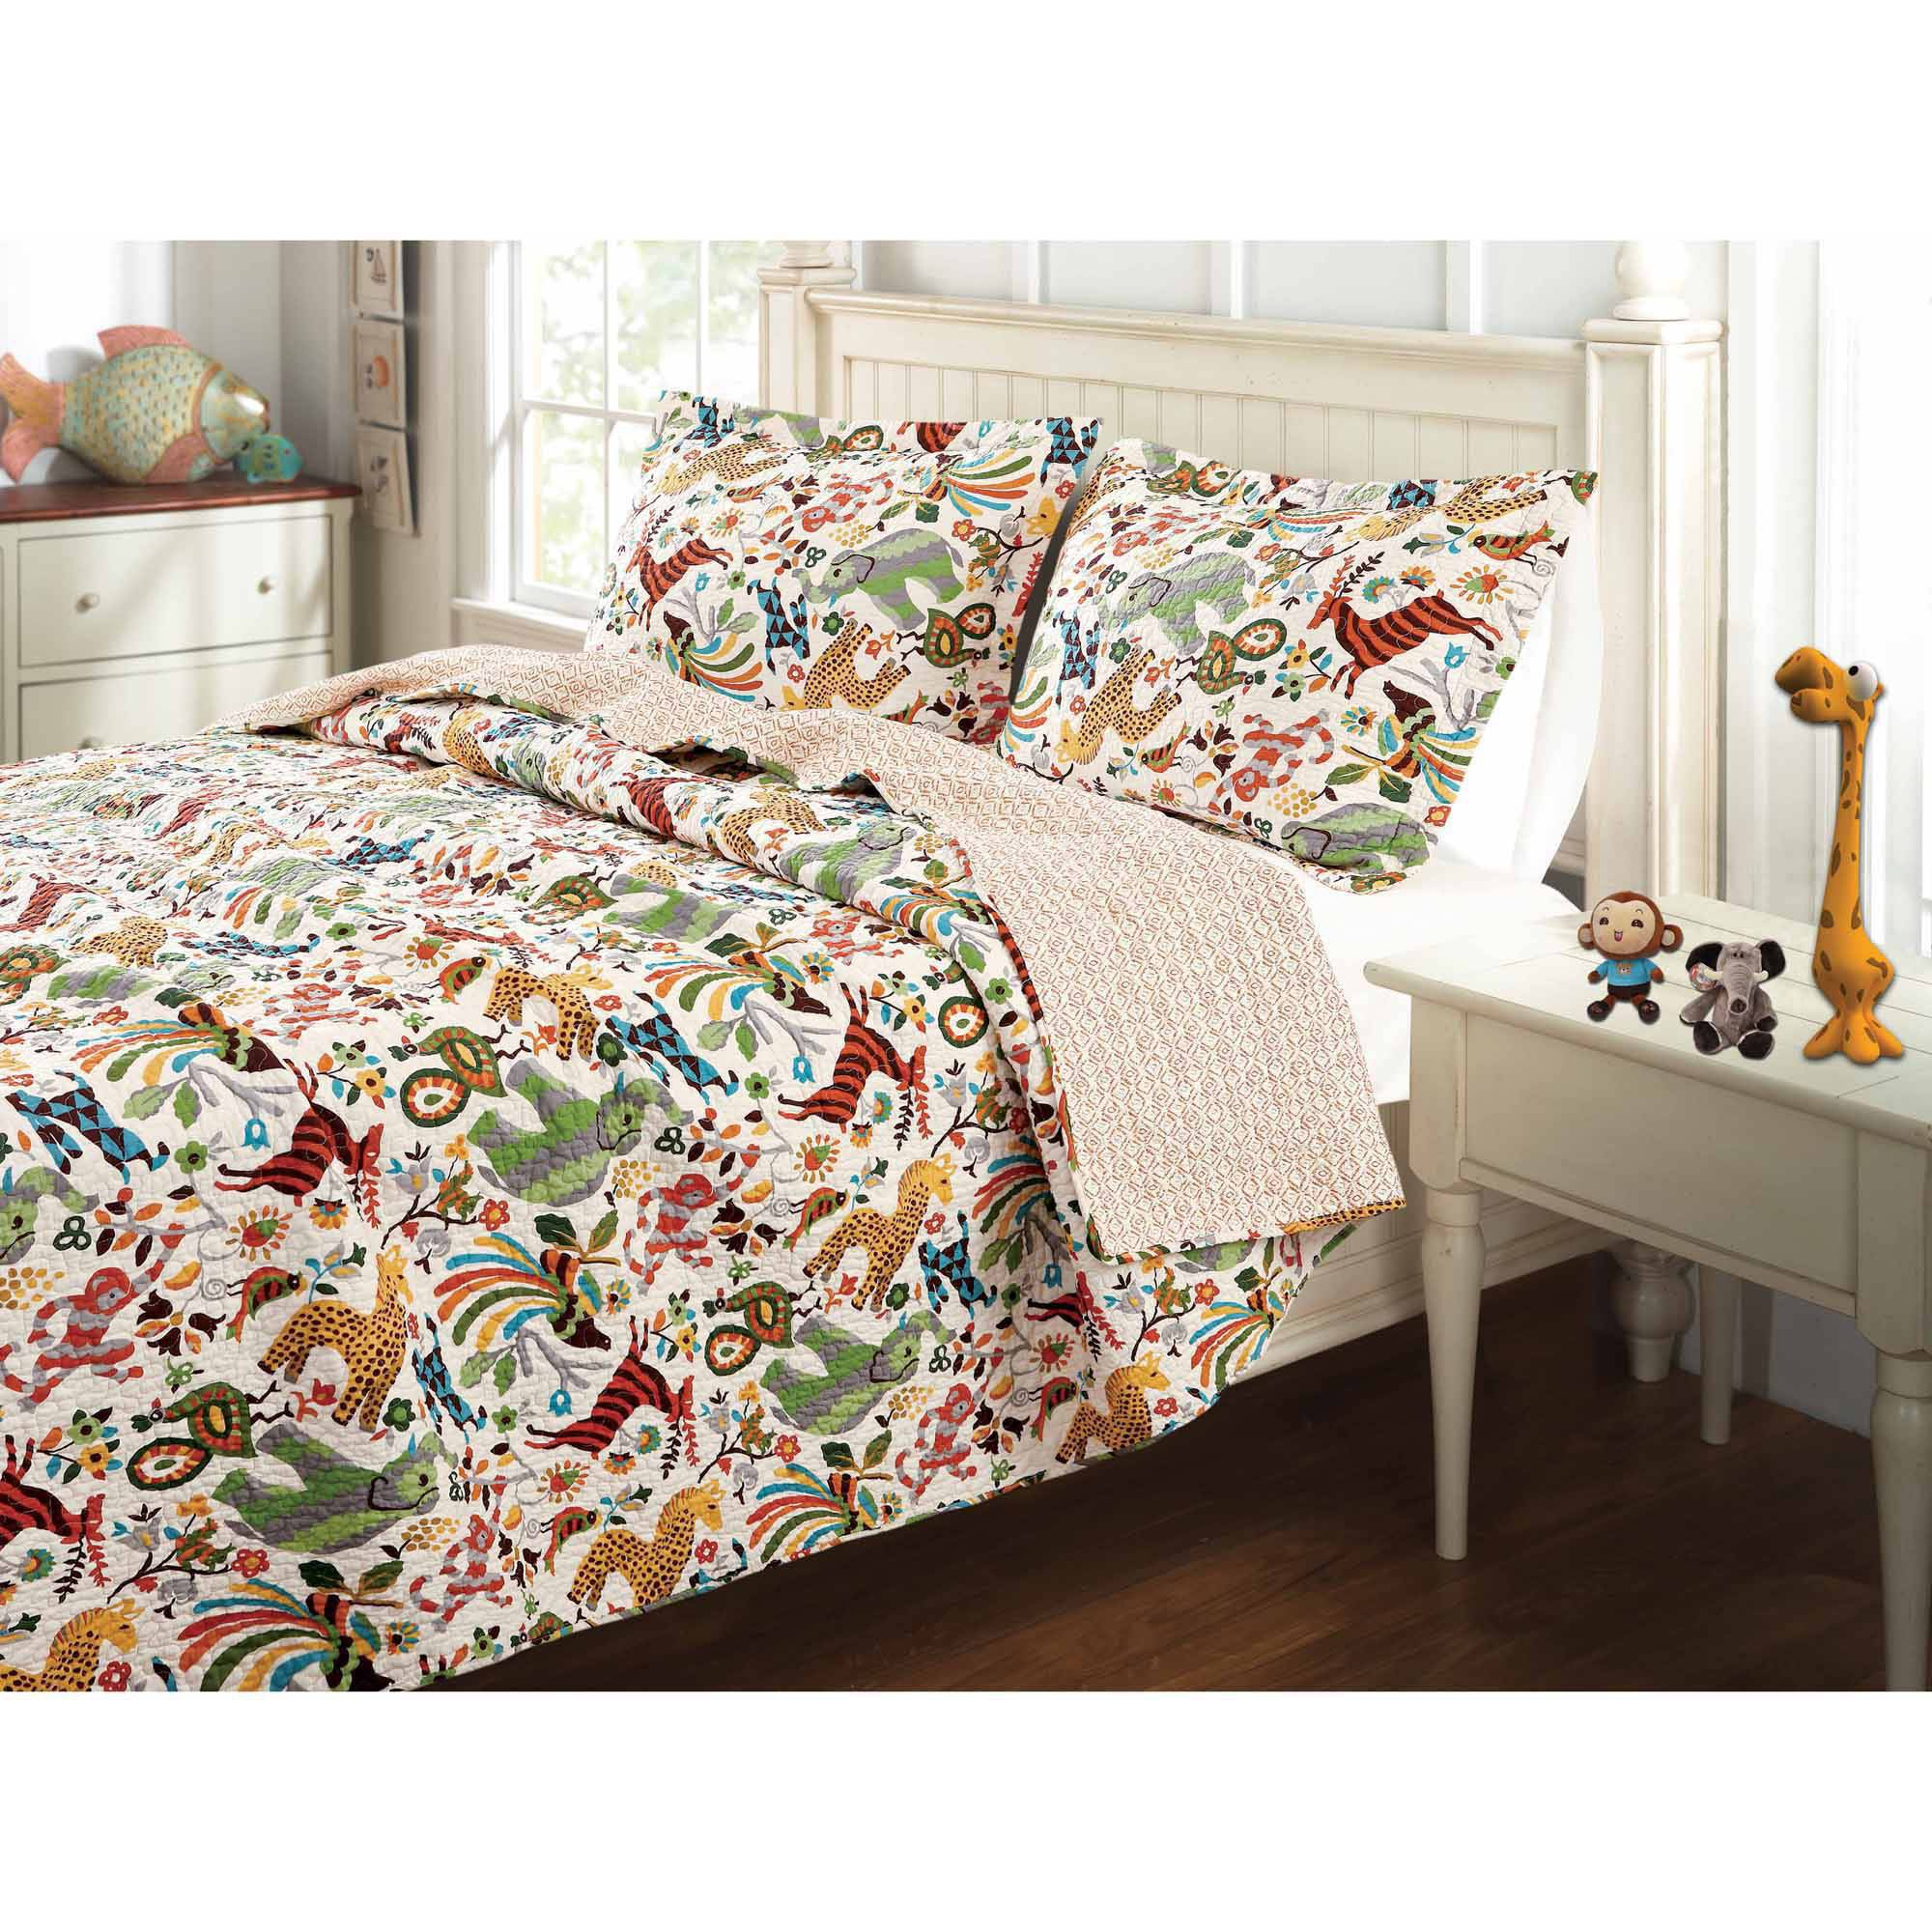 Global Trends Serengeti Place Bedding Quilt Set